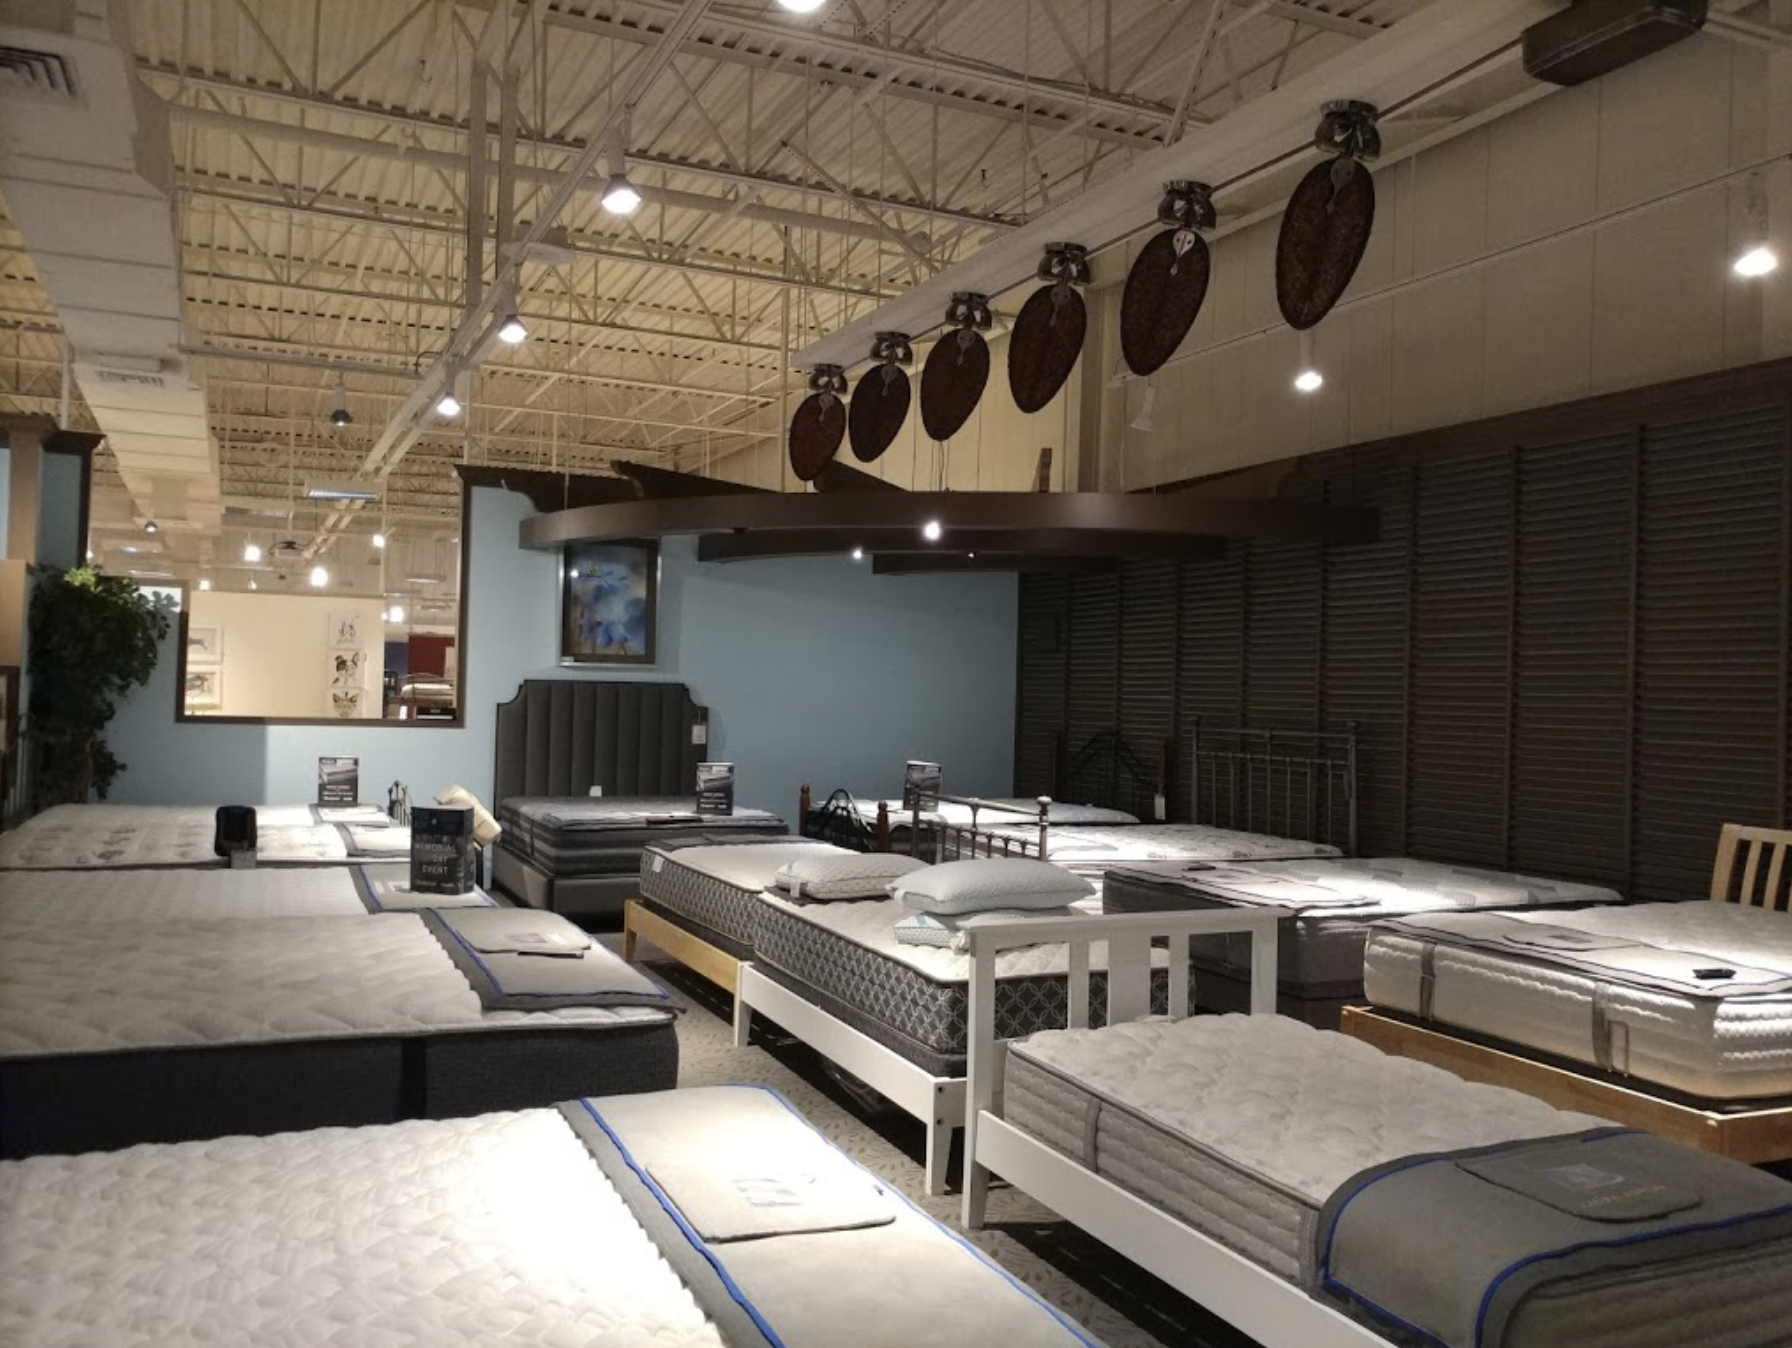 cardi s furniture mattresses store west warwick ri. Black Bedroom Furniture Sets. Home Design Ideas